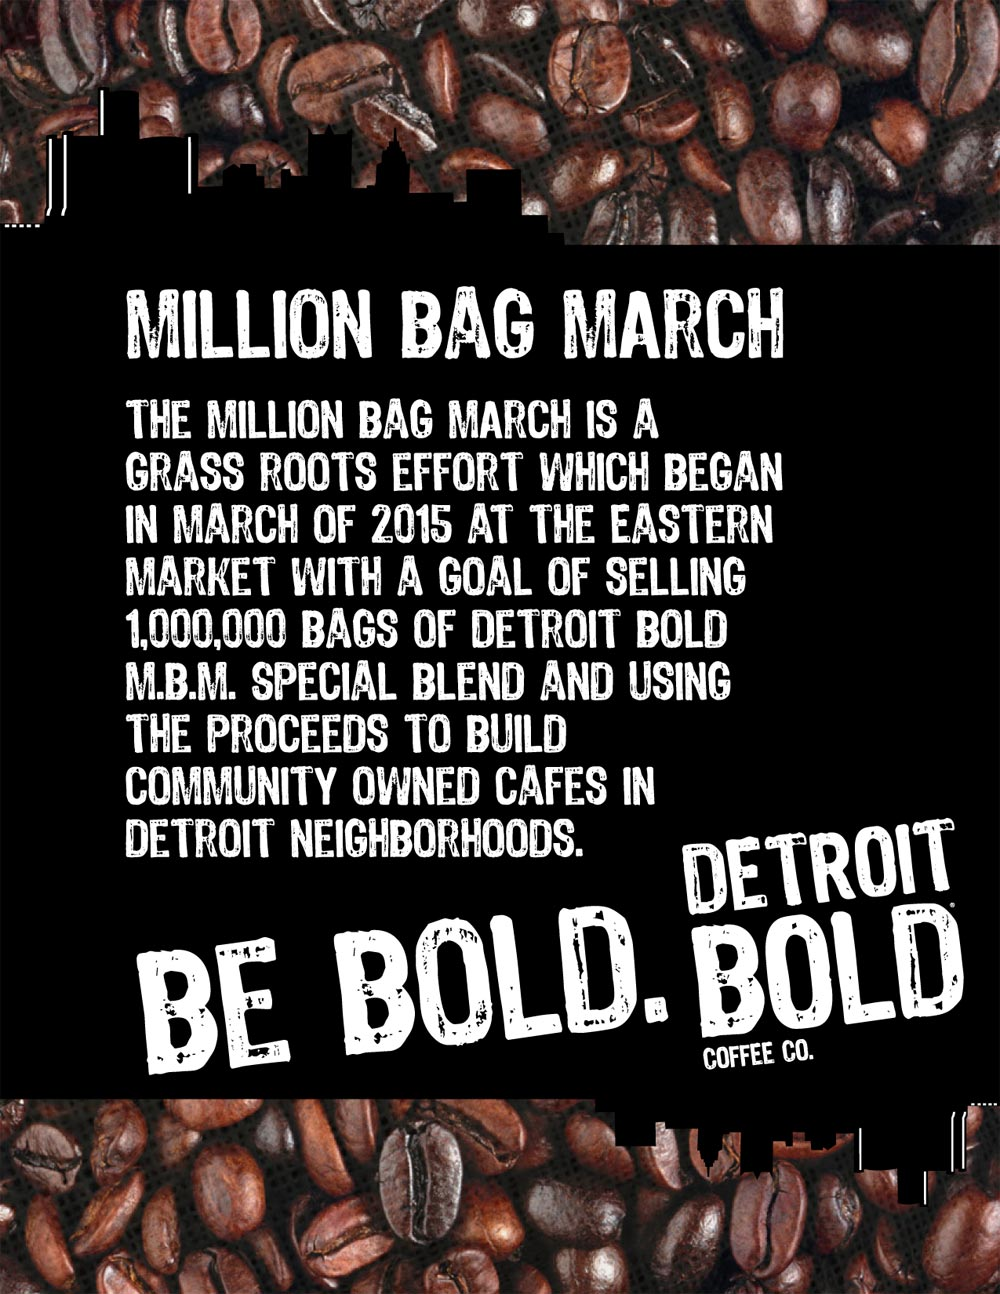 MillionBagMarch--be-bold